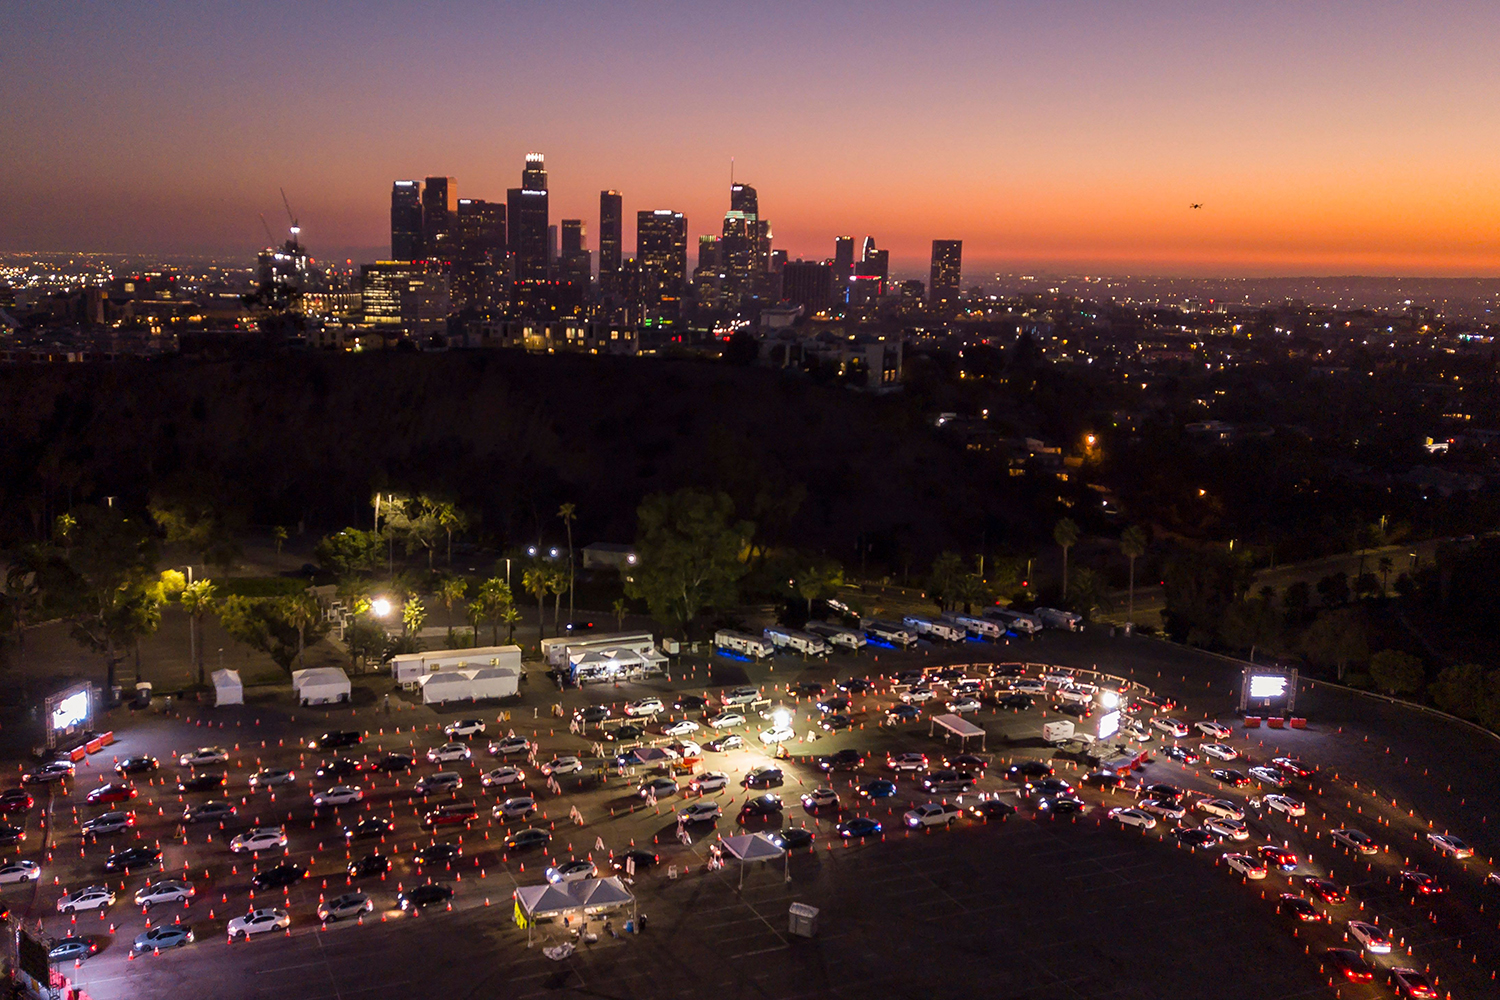 Cars line up for COVID-19 testing in the Dodger Stadium parking lot in Los Angeles on Nov. 14. After California passed 1 million coronavirus cases, a travel advisory was issued urging a two-week quarantine for those arriving from other states or countries. ROBYN BECK/AFP via Getty Images